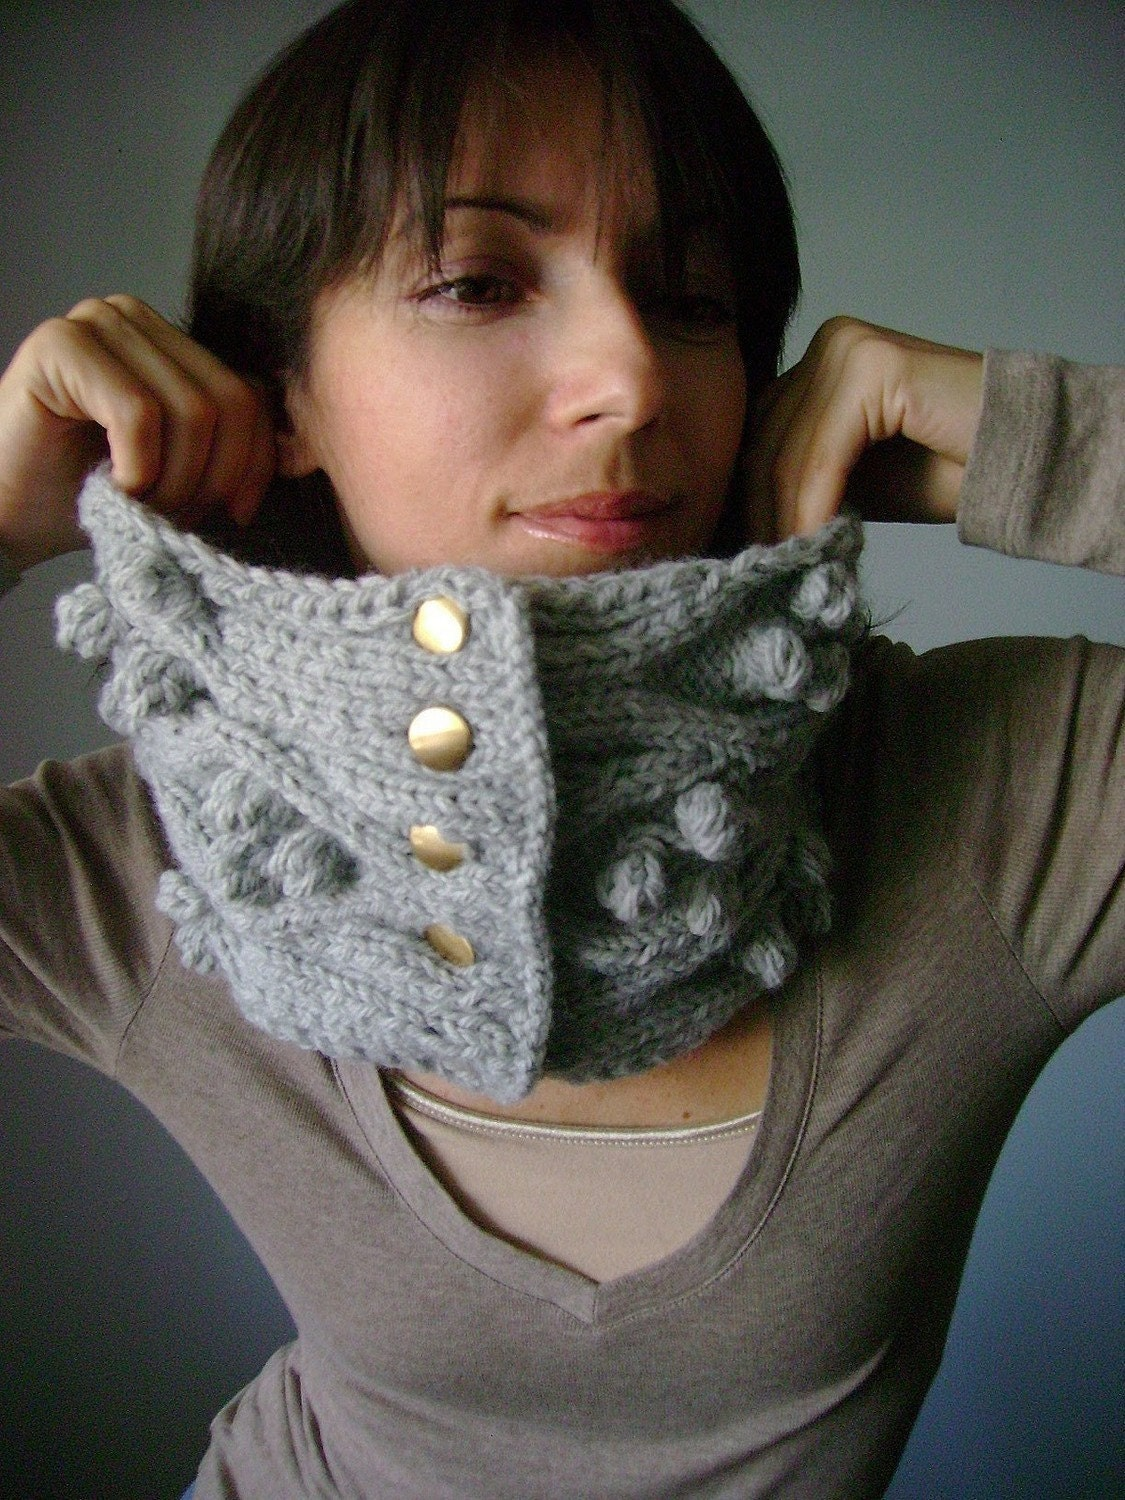 Chunky  bulky  handknit cowl - scarf - neckwarmer   Harbor Mist  - gray - silver -  cable knit